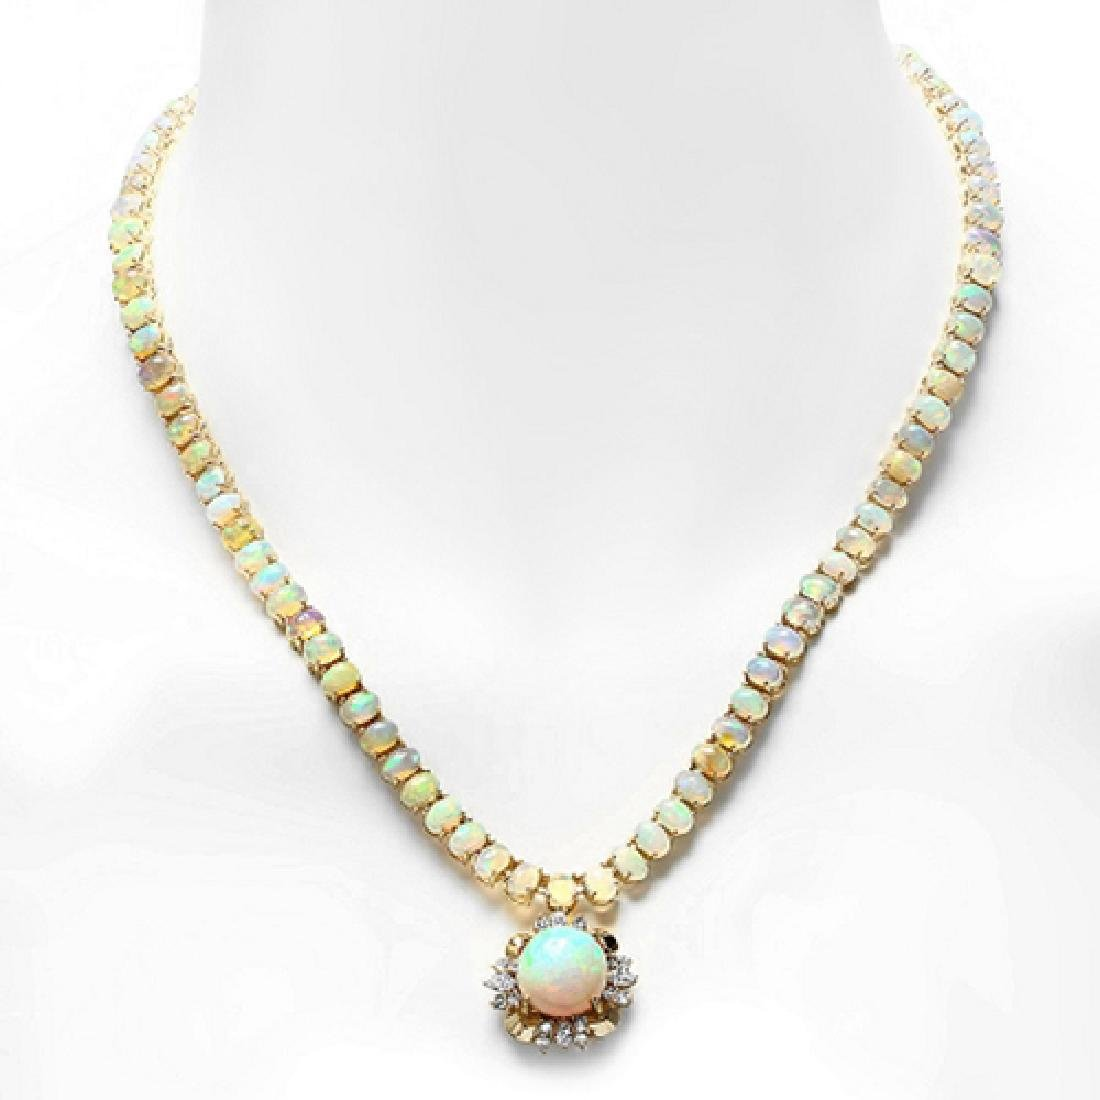 35.62 Carat Natural Opal 18K Solid Yellow Gold Diamond